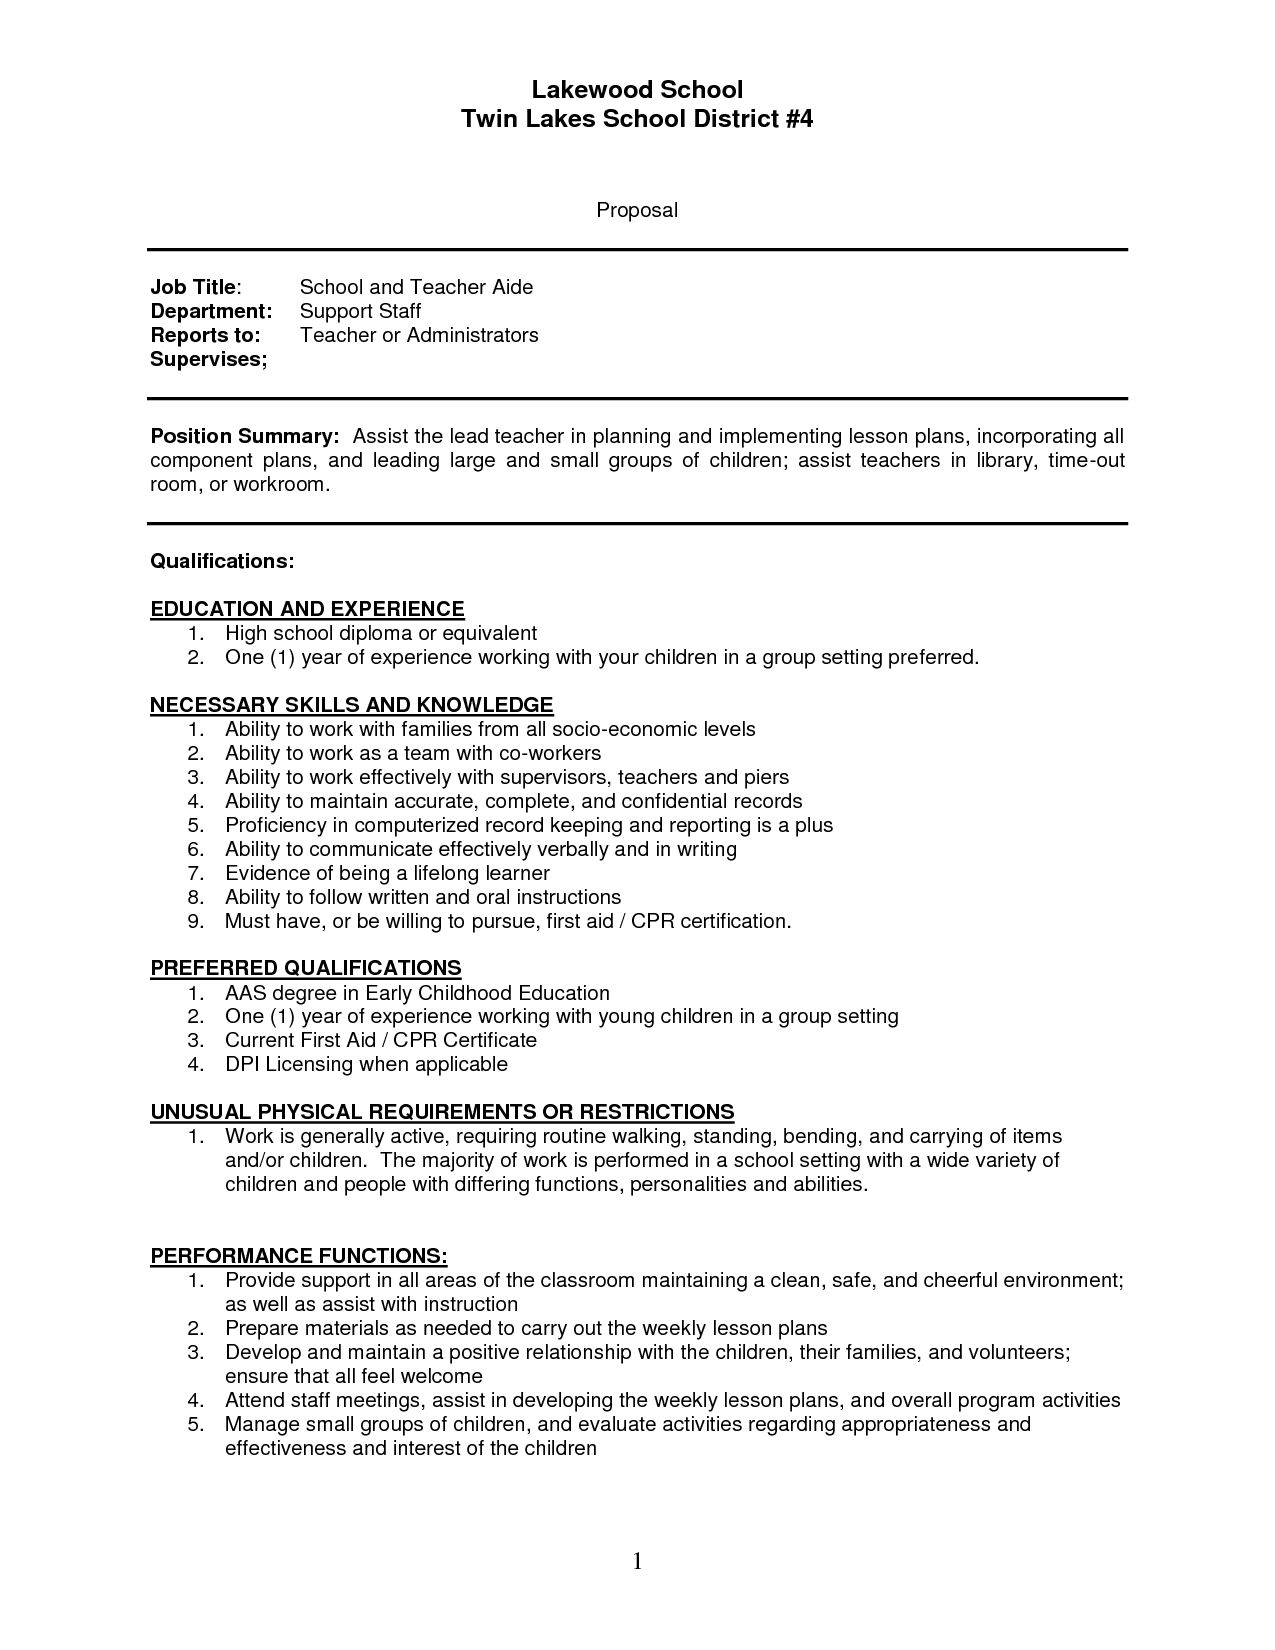 Preferred Resume Group Best Sample Resume Teachers Aide Assistant Cover Letter Teacher Sap .